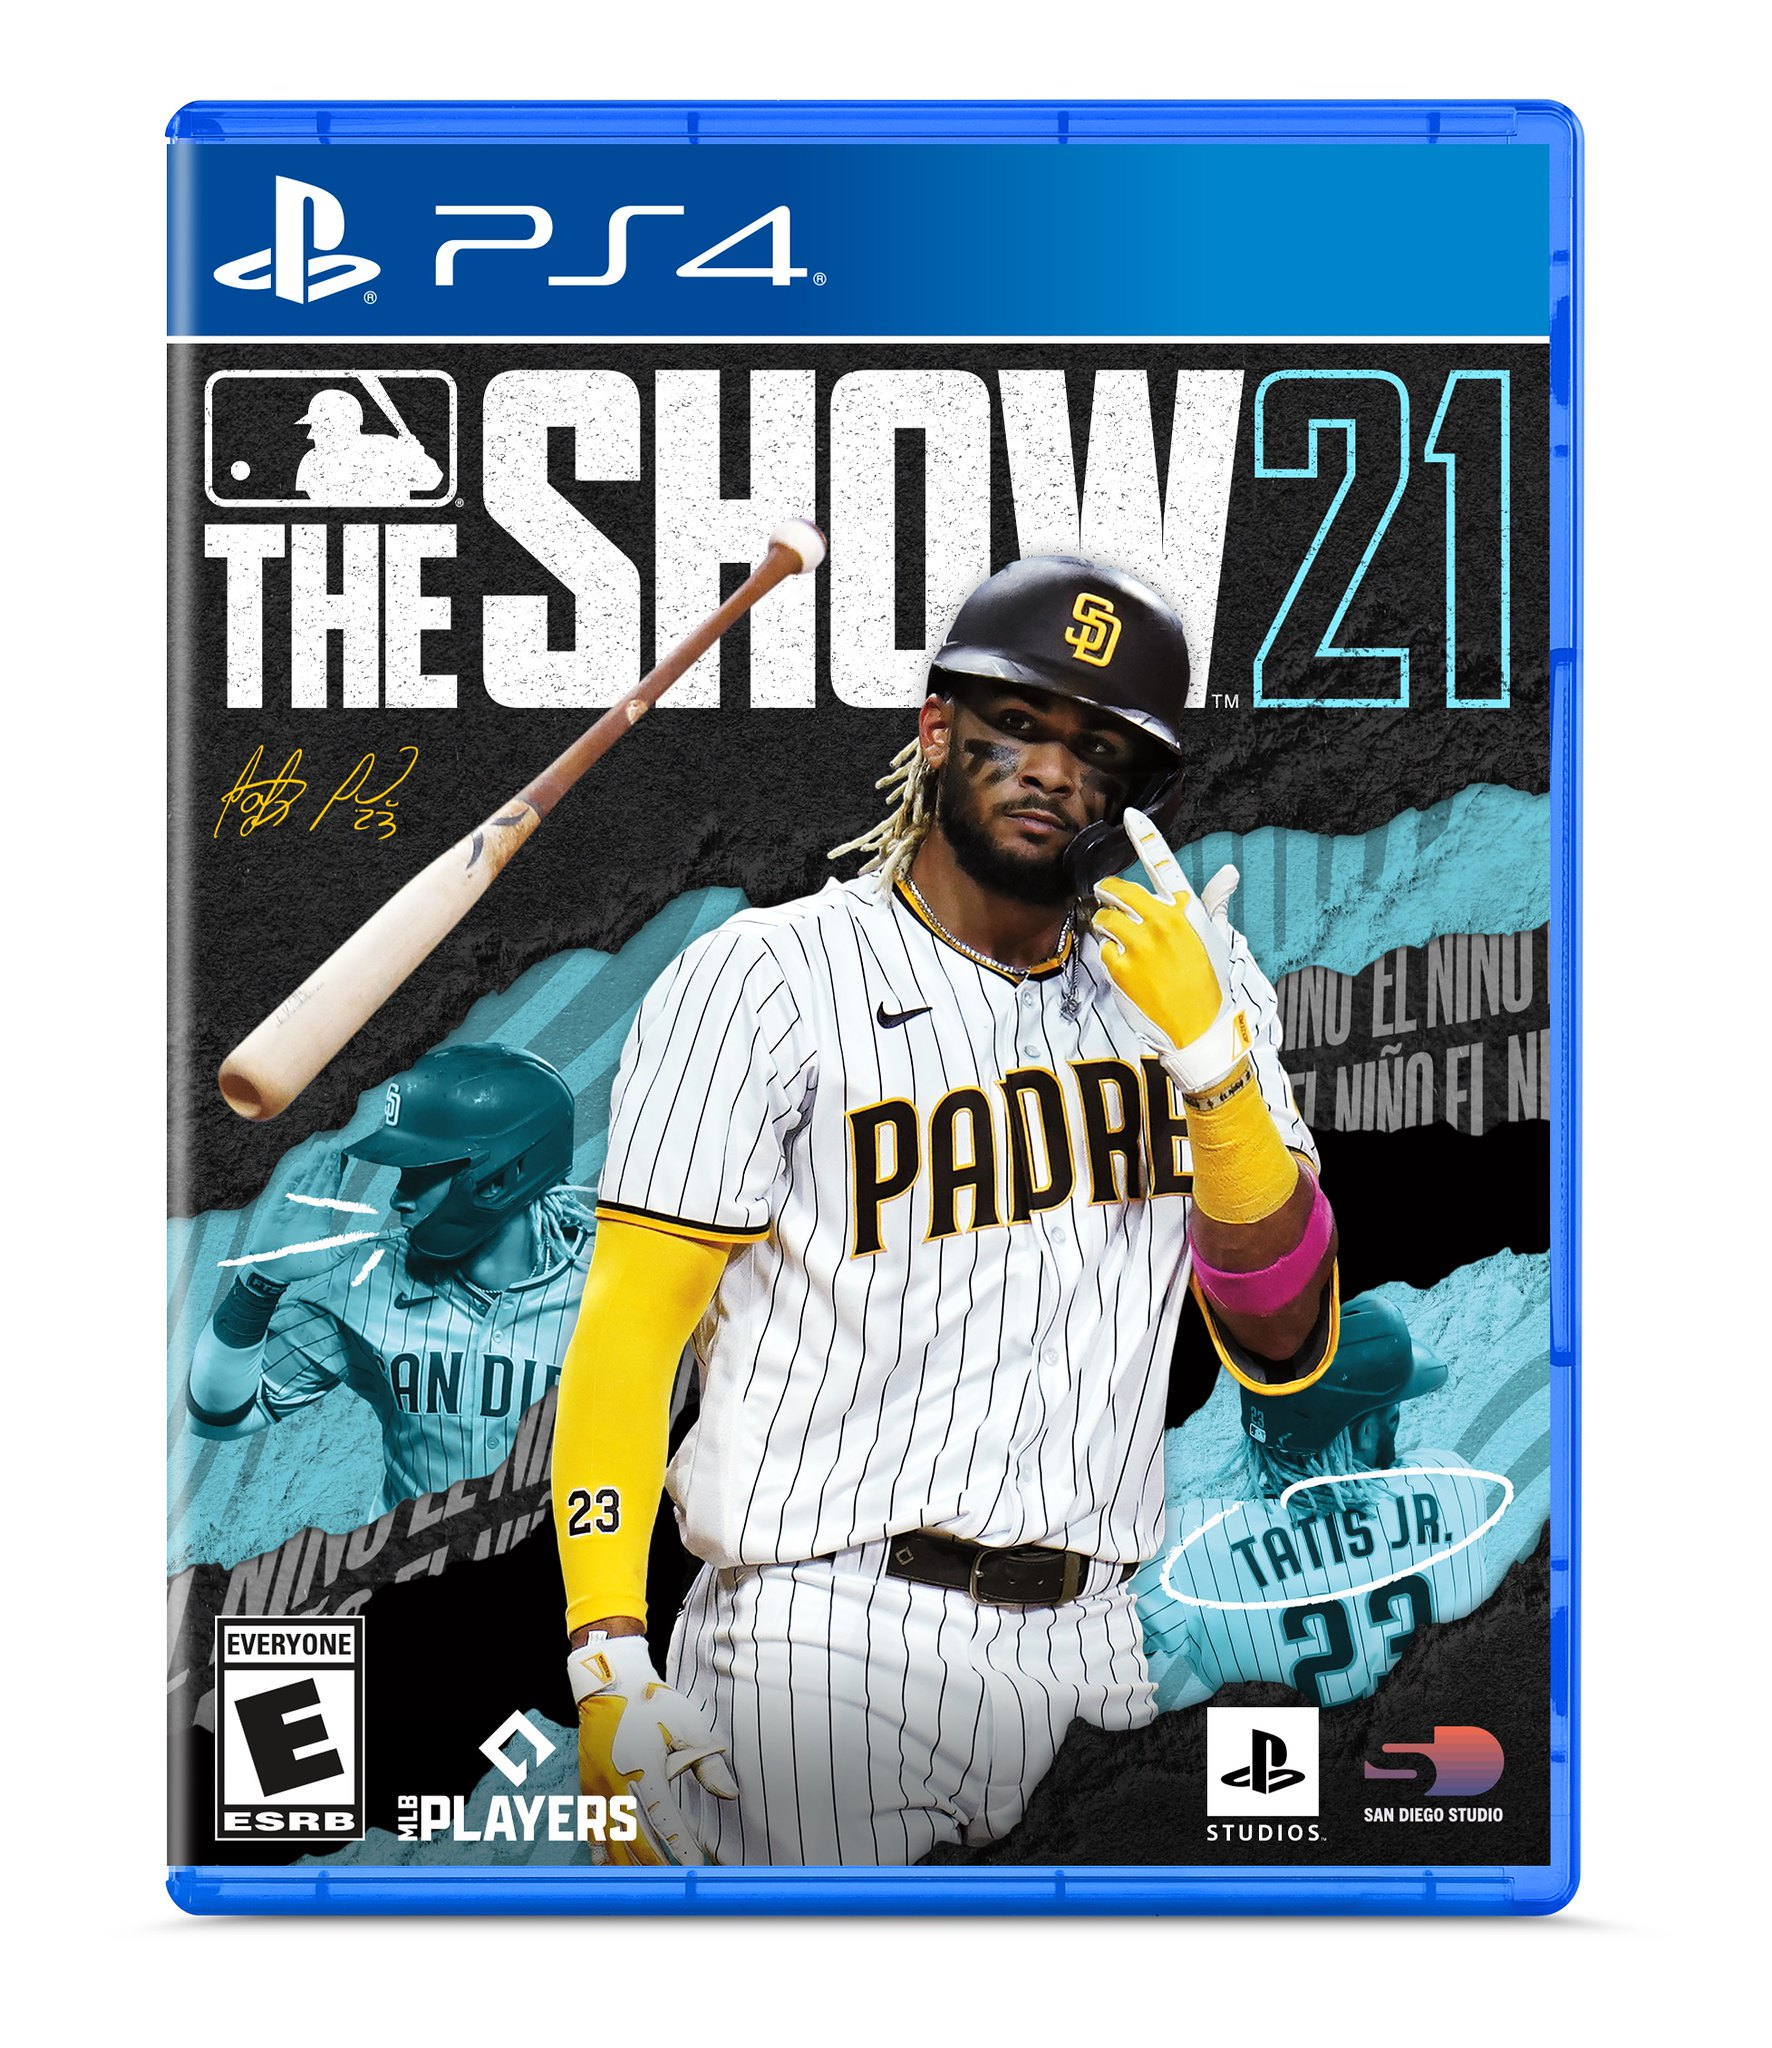 Jackie Robinson to appear on MLB The Show 21 collector's edition cover